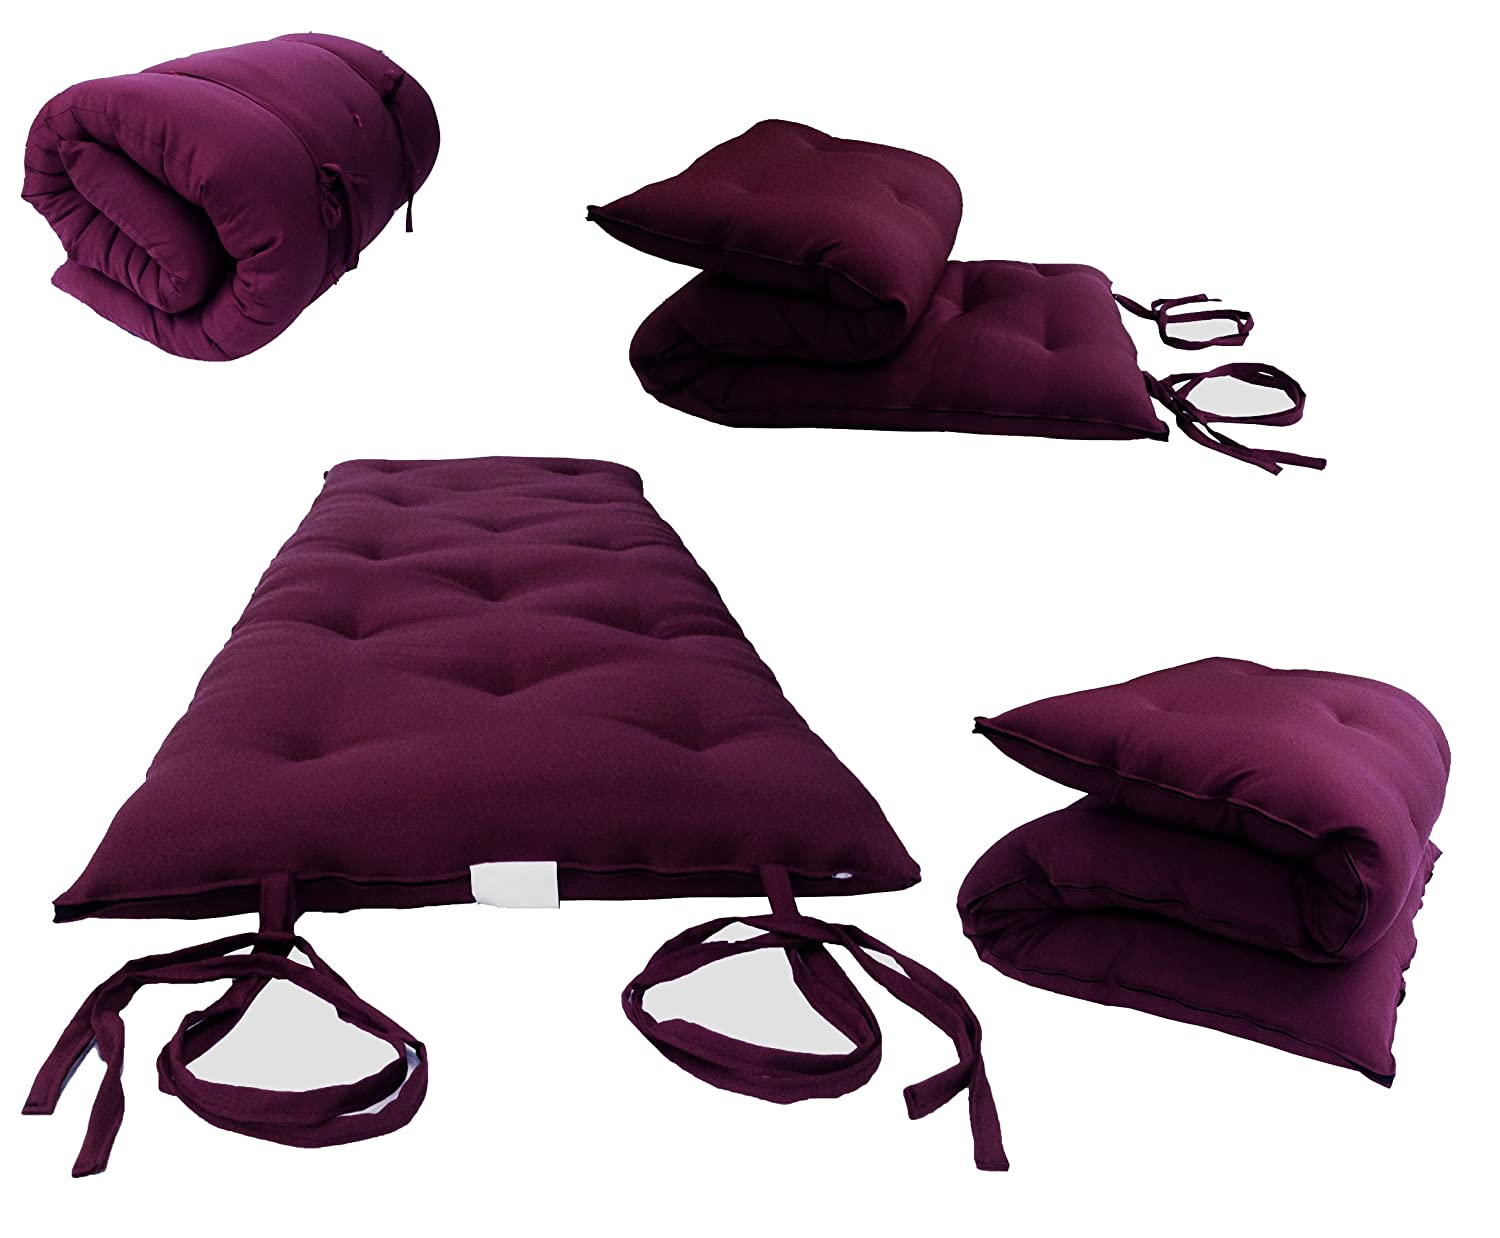 D&D Futon Furniture Brand New Queen Size Burgundy Traditional Japanese Floor Futon Mattresses, Foldable Cushion Mats, Yoga, Meditaion 60